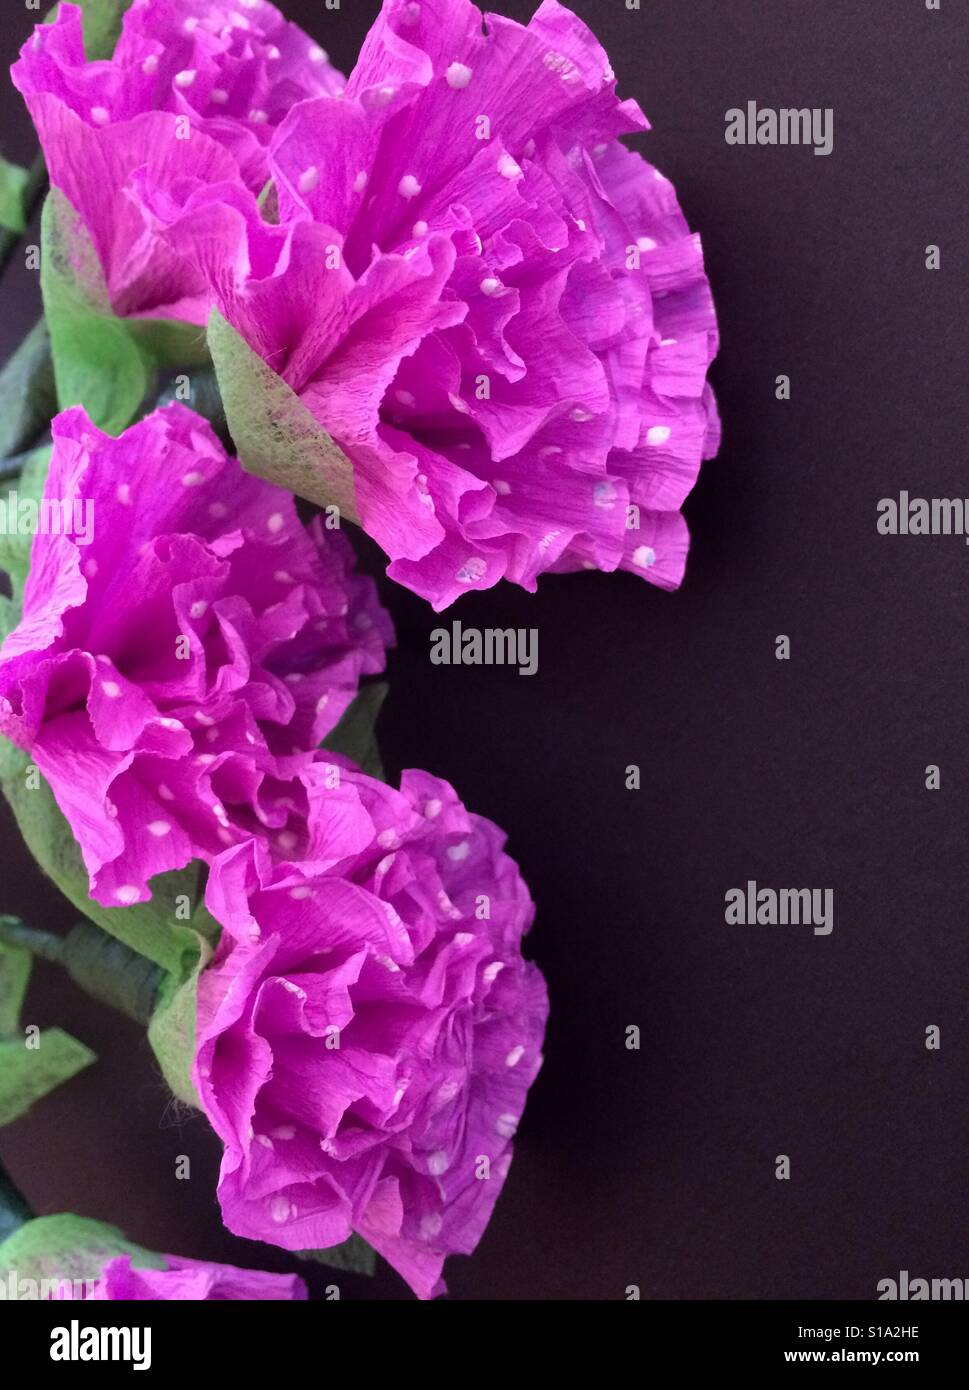 Tissue Paper Flowers Stock Photos Tissue Paper Flowers Stock